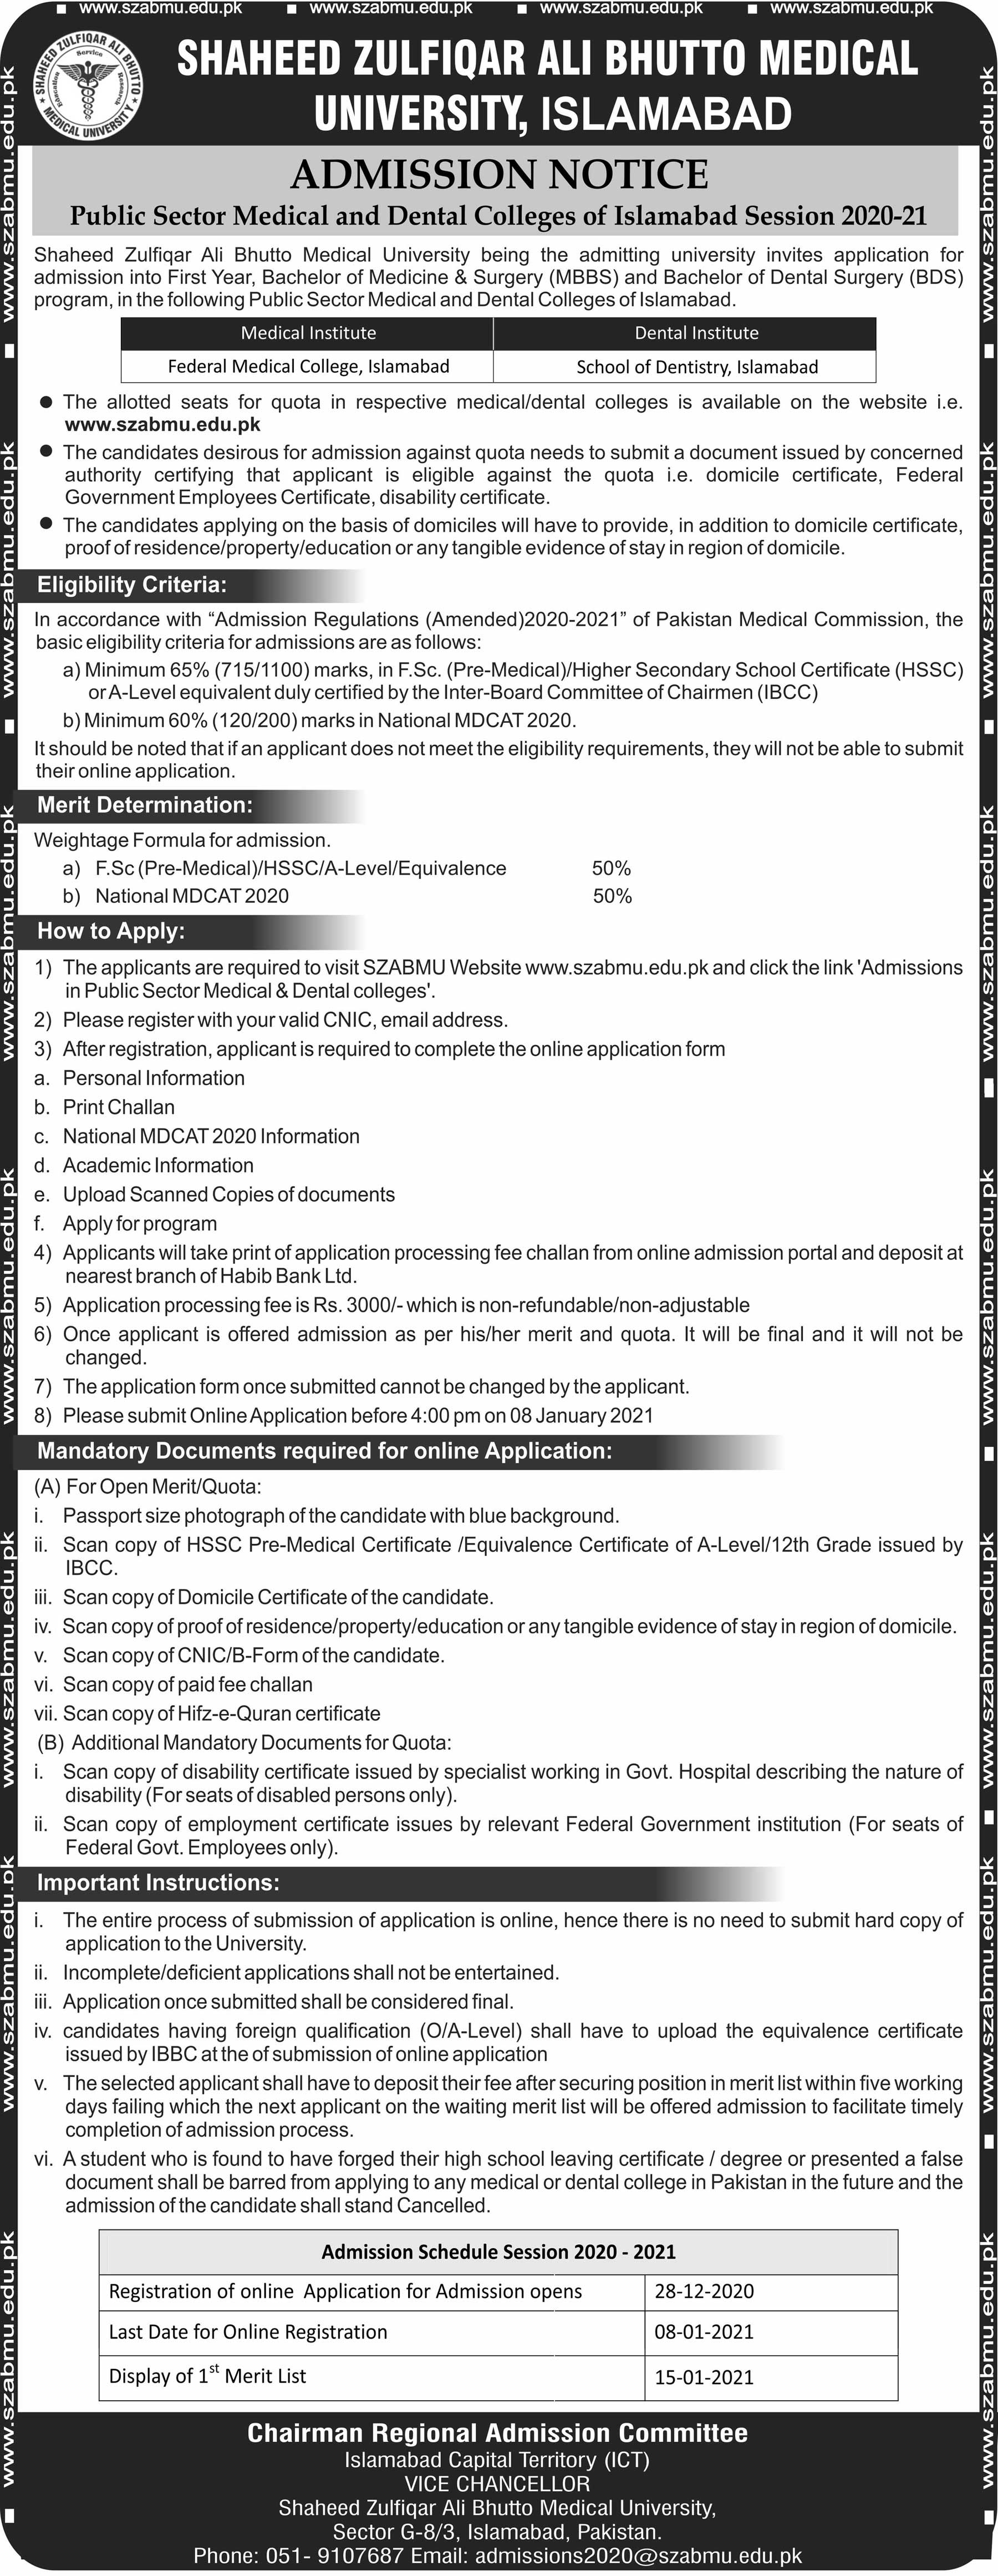 Admission Notice - Public Sector Medical and Dental Colleges of Islamabad Session 2020-21